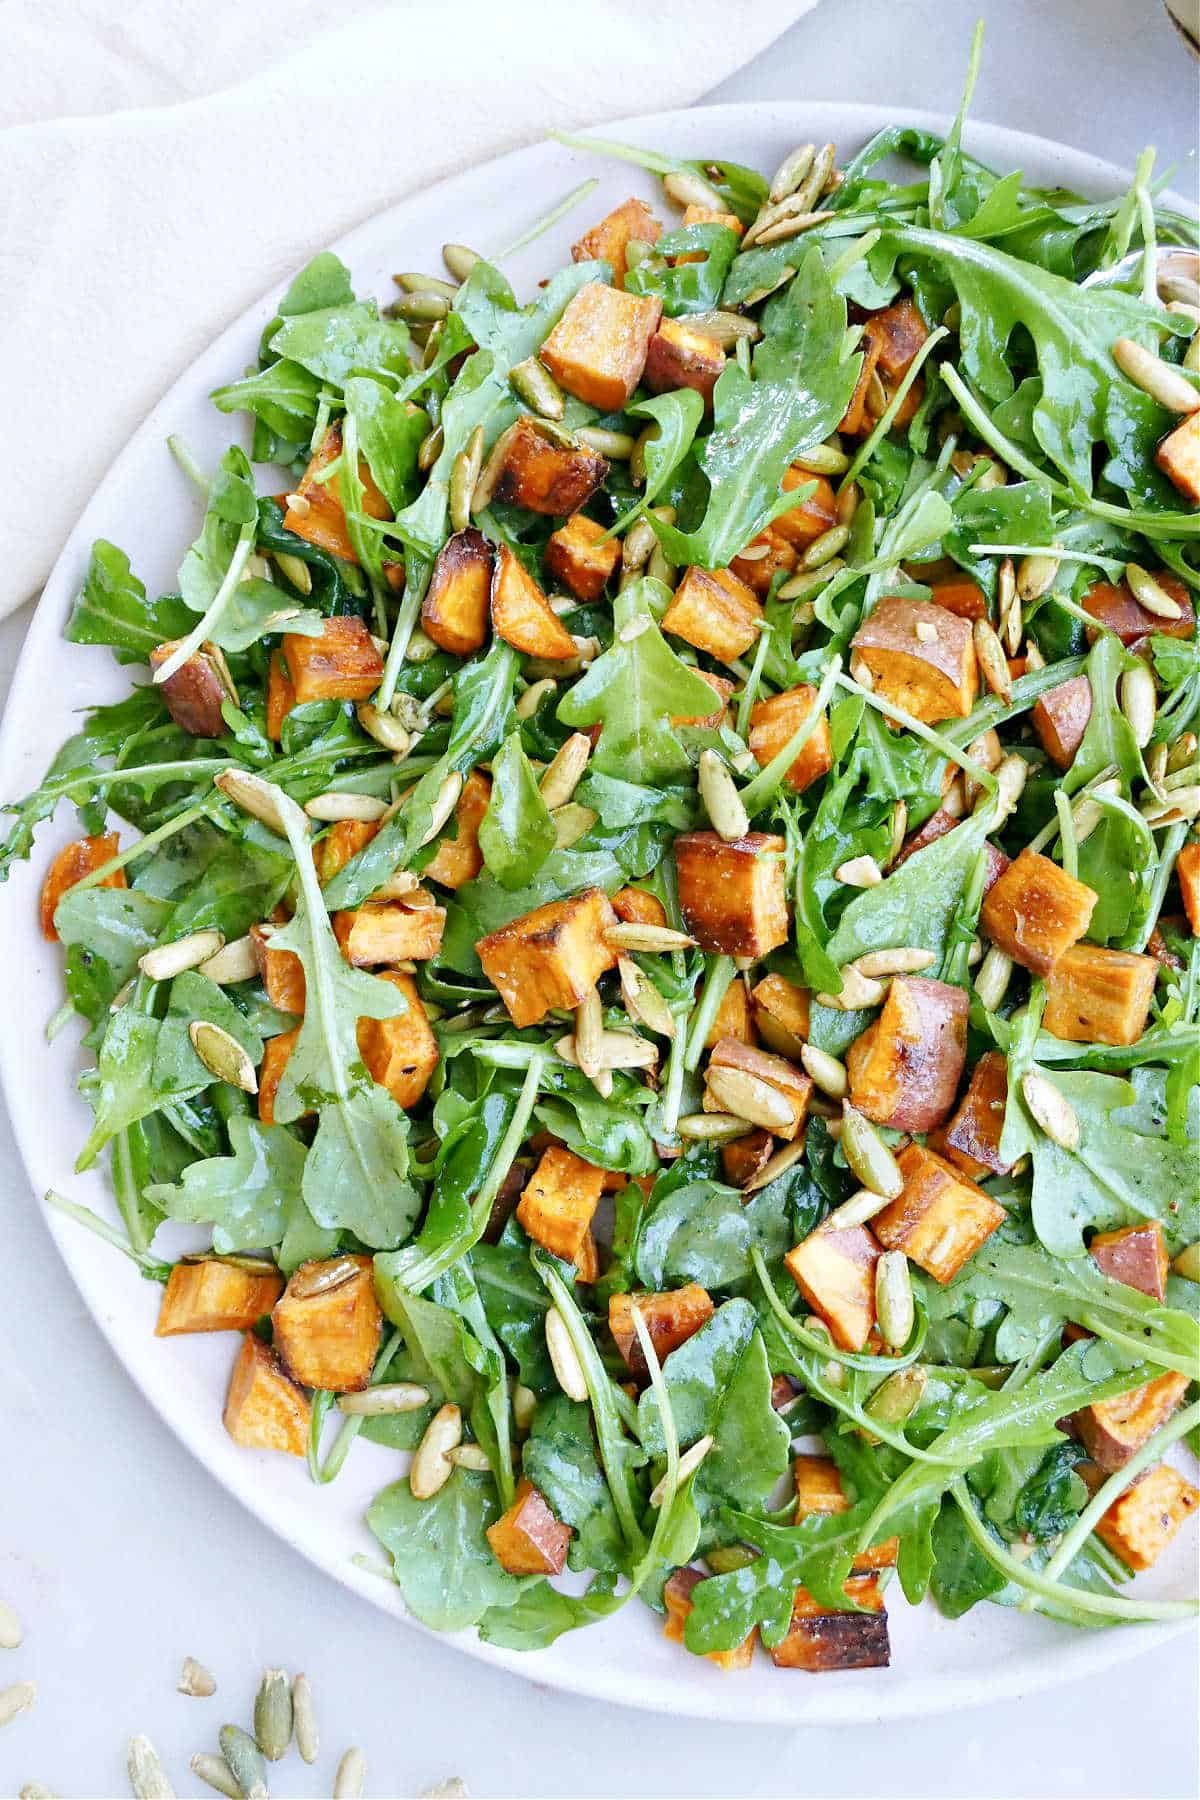 arugula sweet potato salad topped with pumpkin seeds on a large serving dish